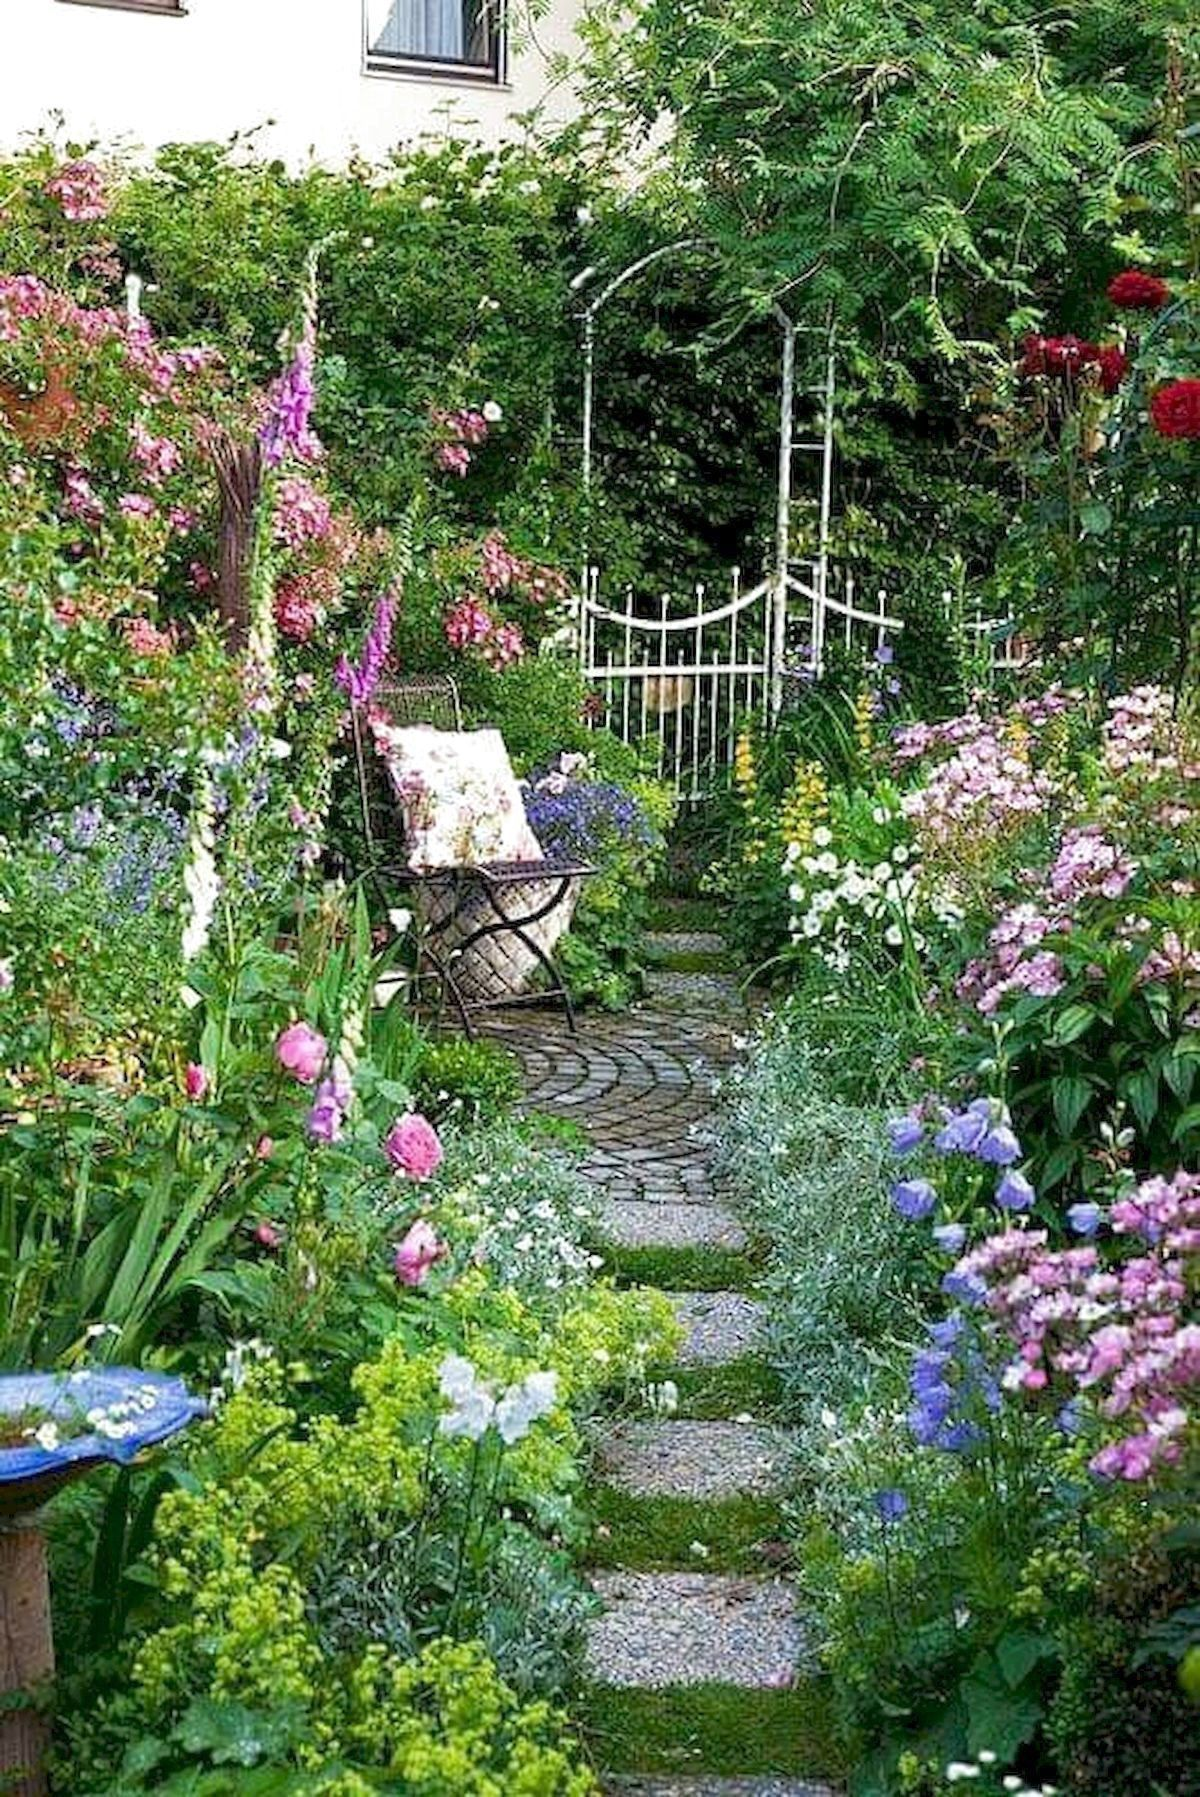 Beautiful Garden Designs That Add Beauty To Your Outdoor Space 06 Gardening 101 Gardening Covers Toma Beautiful Gardens Small Garden Design Riverside Garden